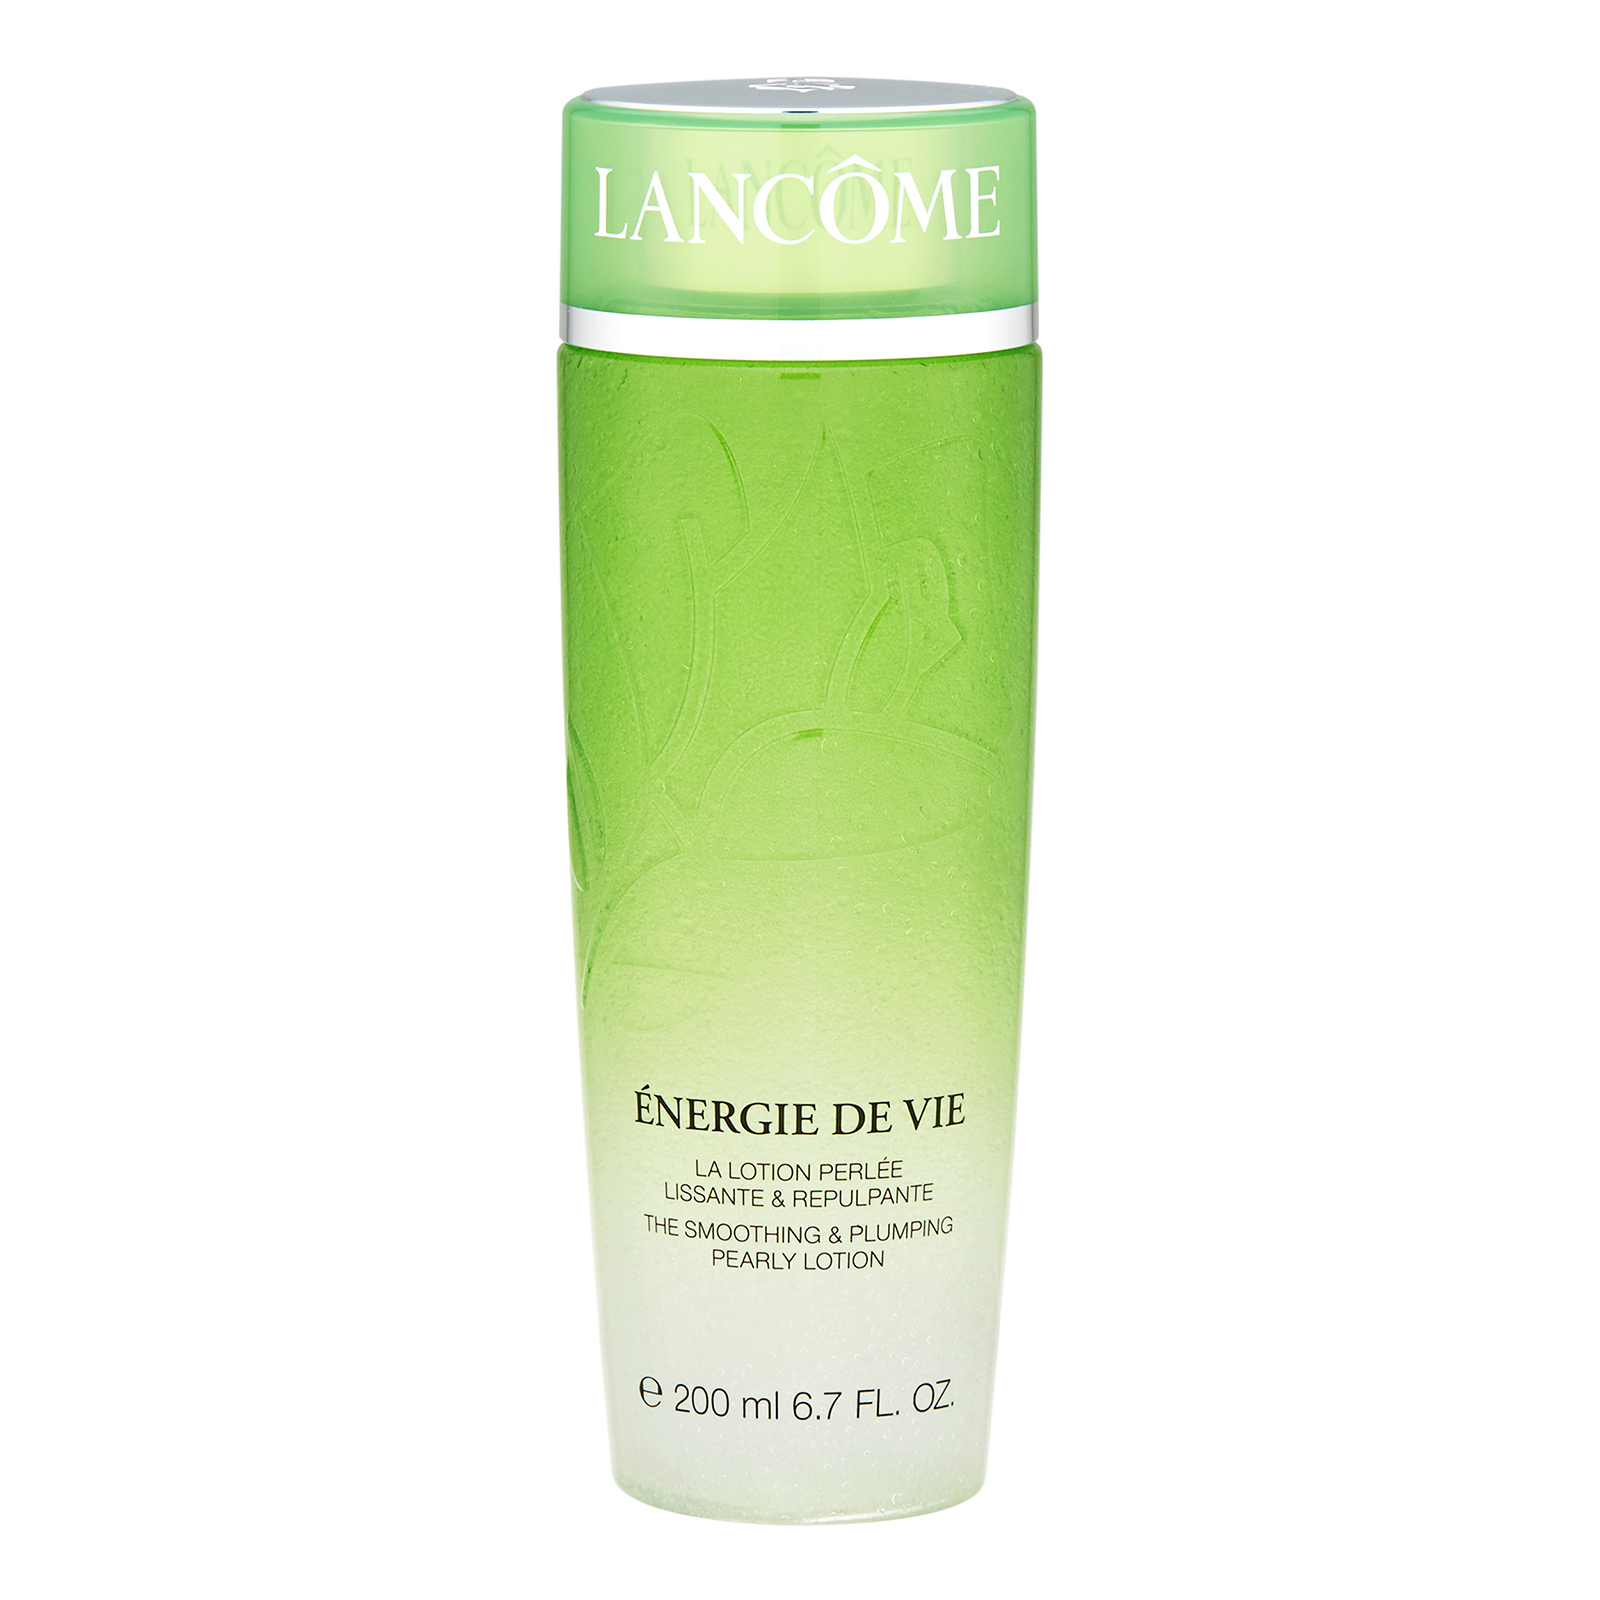 LANCÔME Energie De Vie The Smoothing & Plumping Pearly Lotion 6.7oz, 200ml from Cosme-De.com